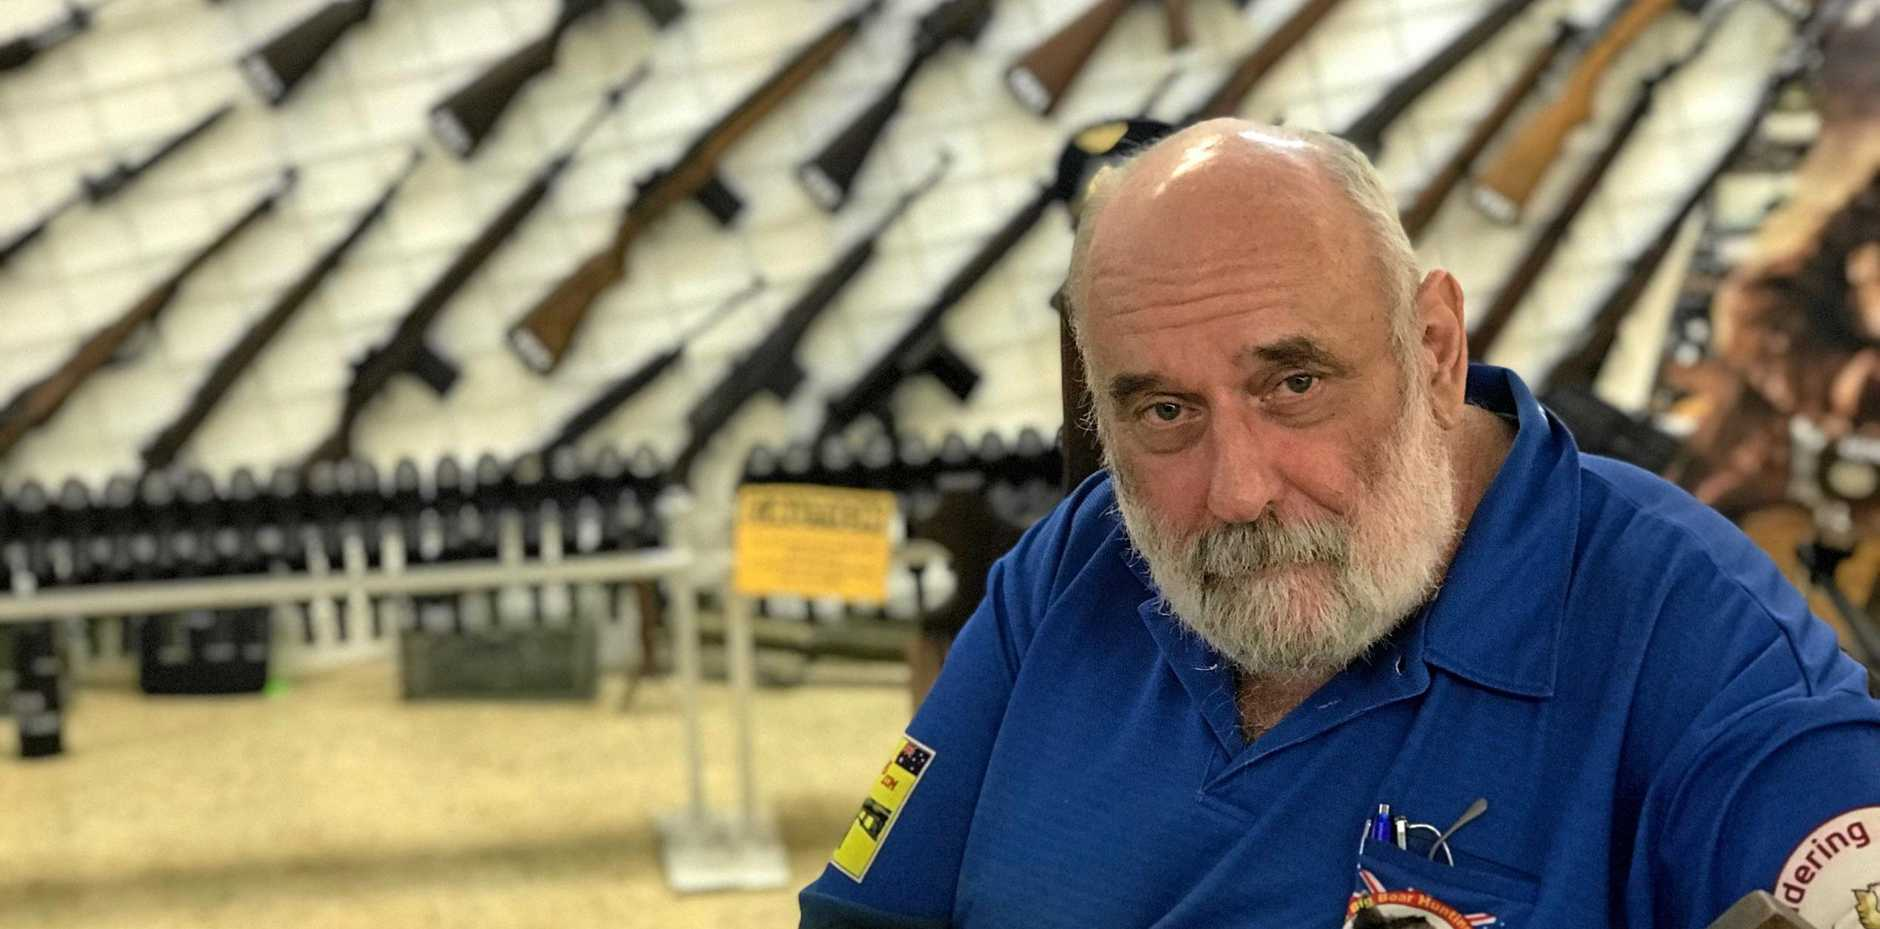 CHANGES NEEDED: Gympie gun shop owner Ron Owen says legislation needs to be geared towards business owners have the right to carry.